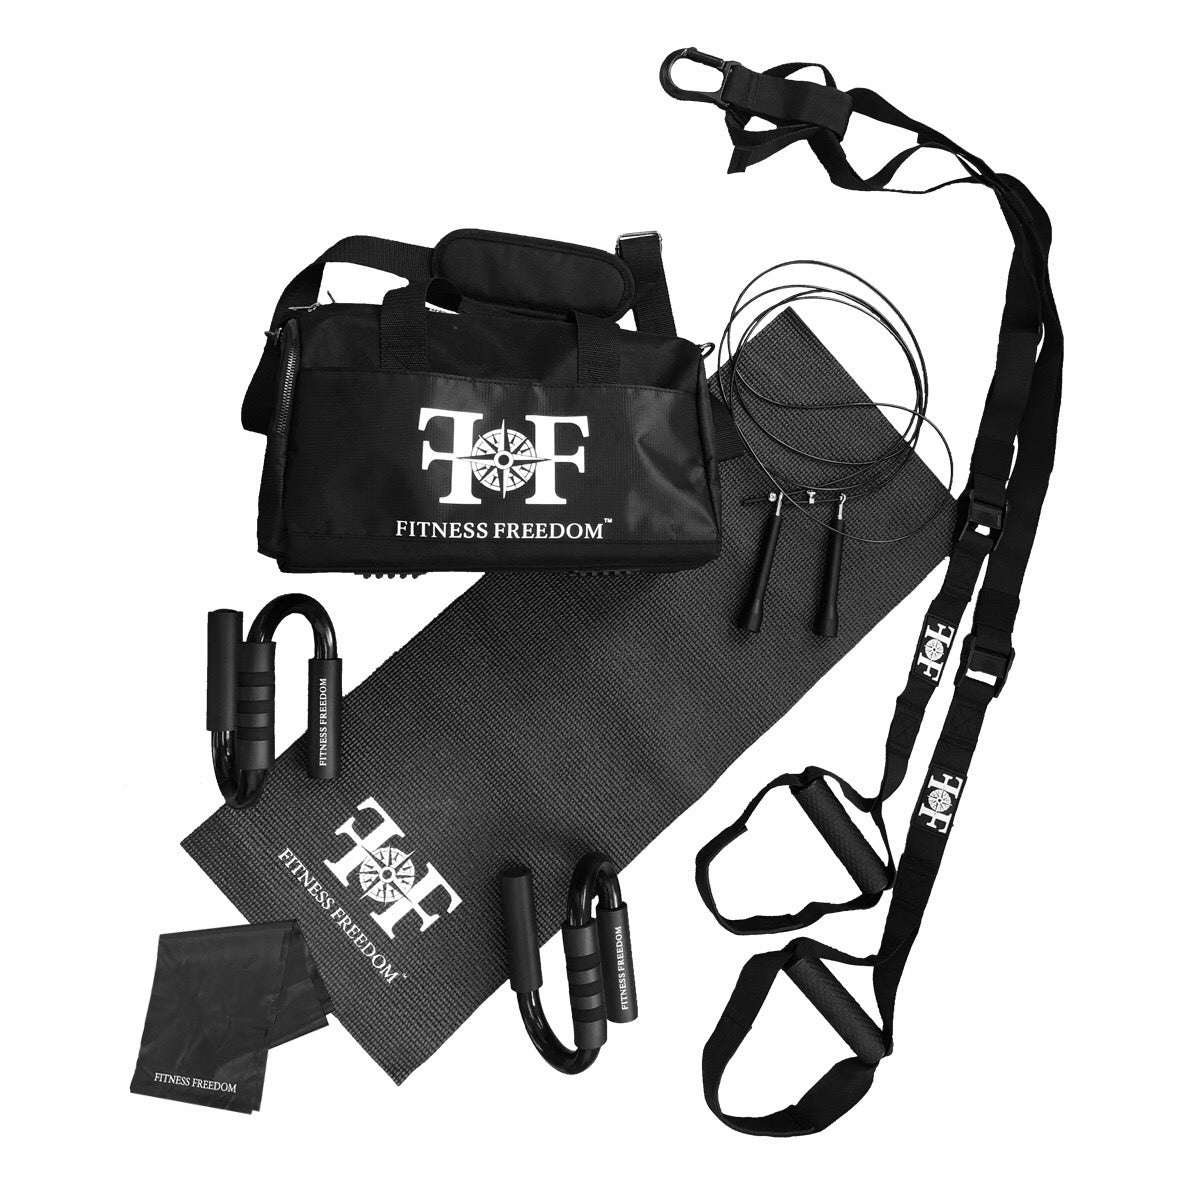 Complete Fitness Travel Pack